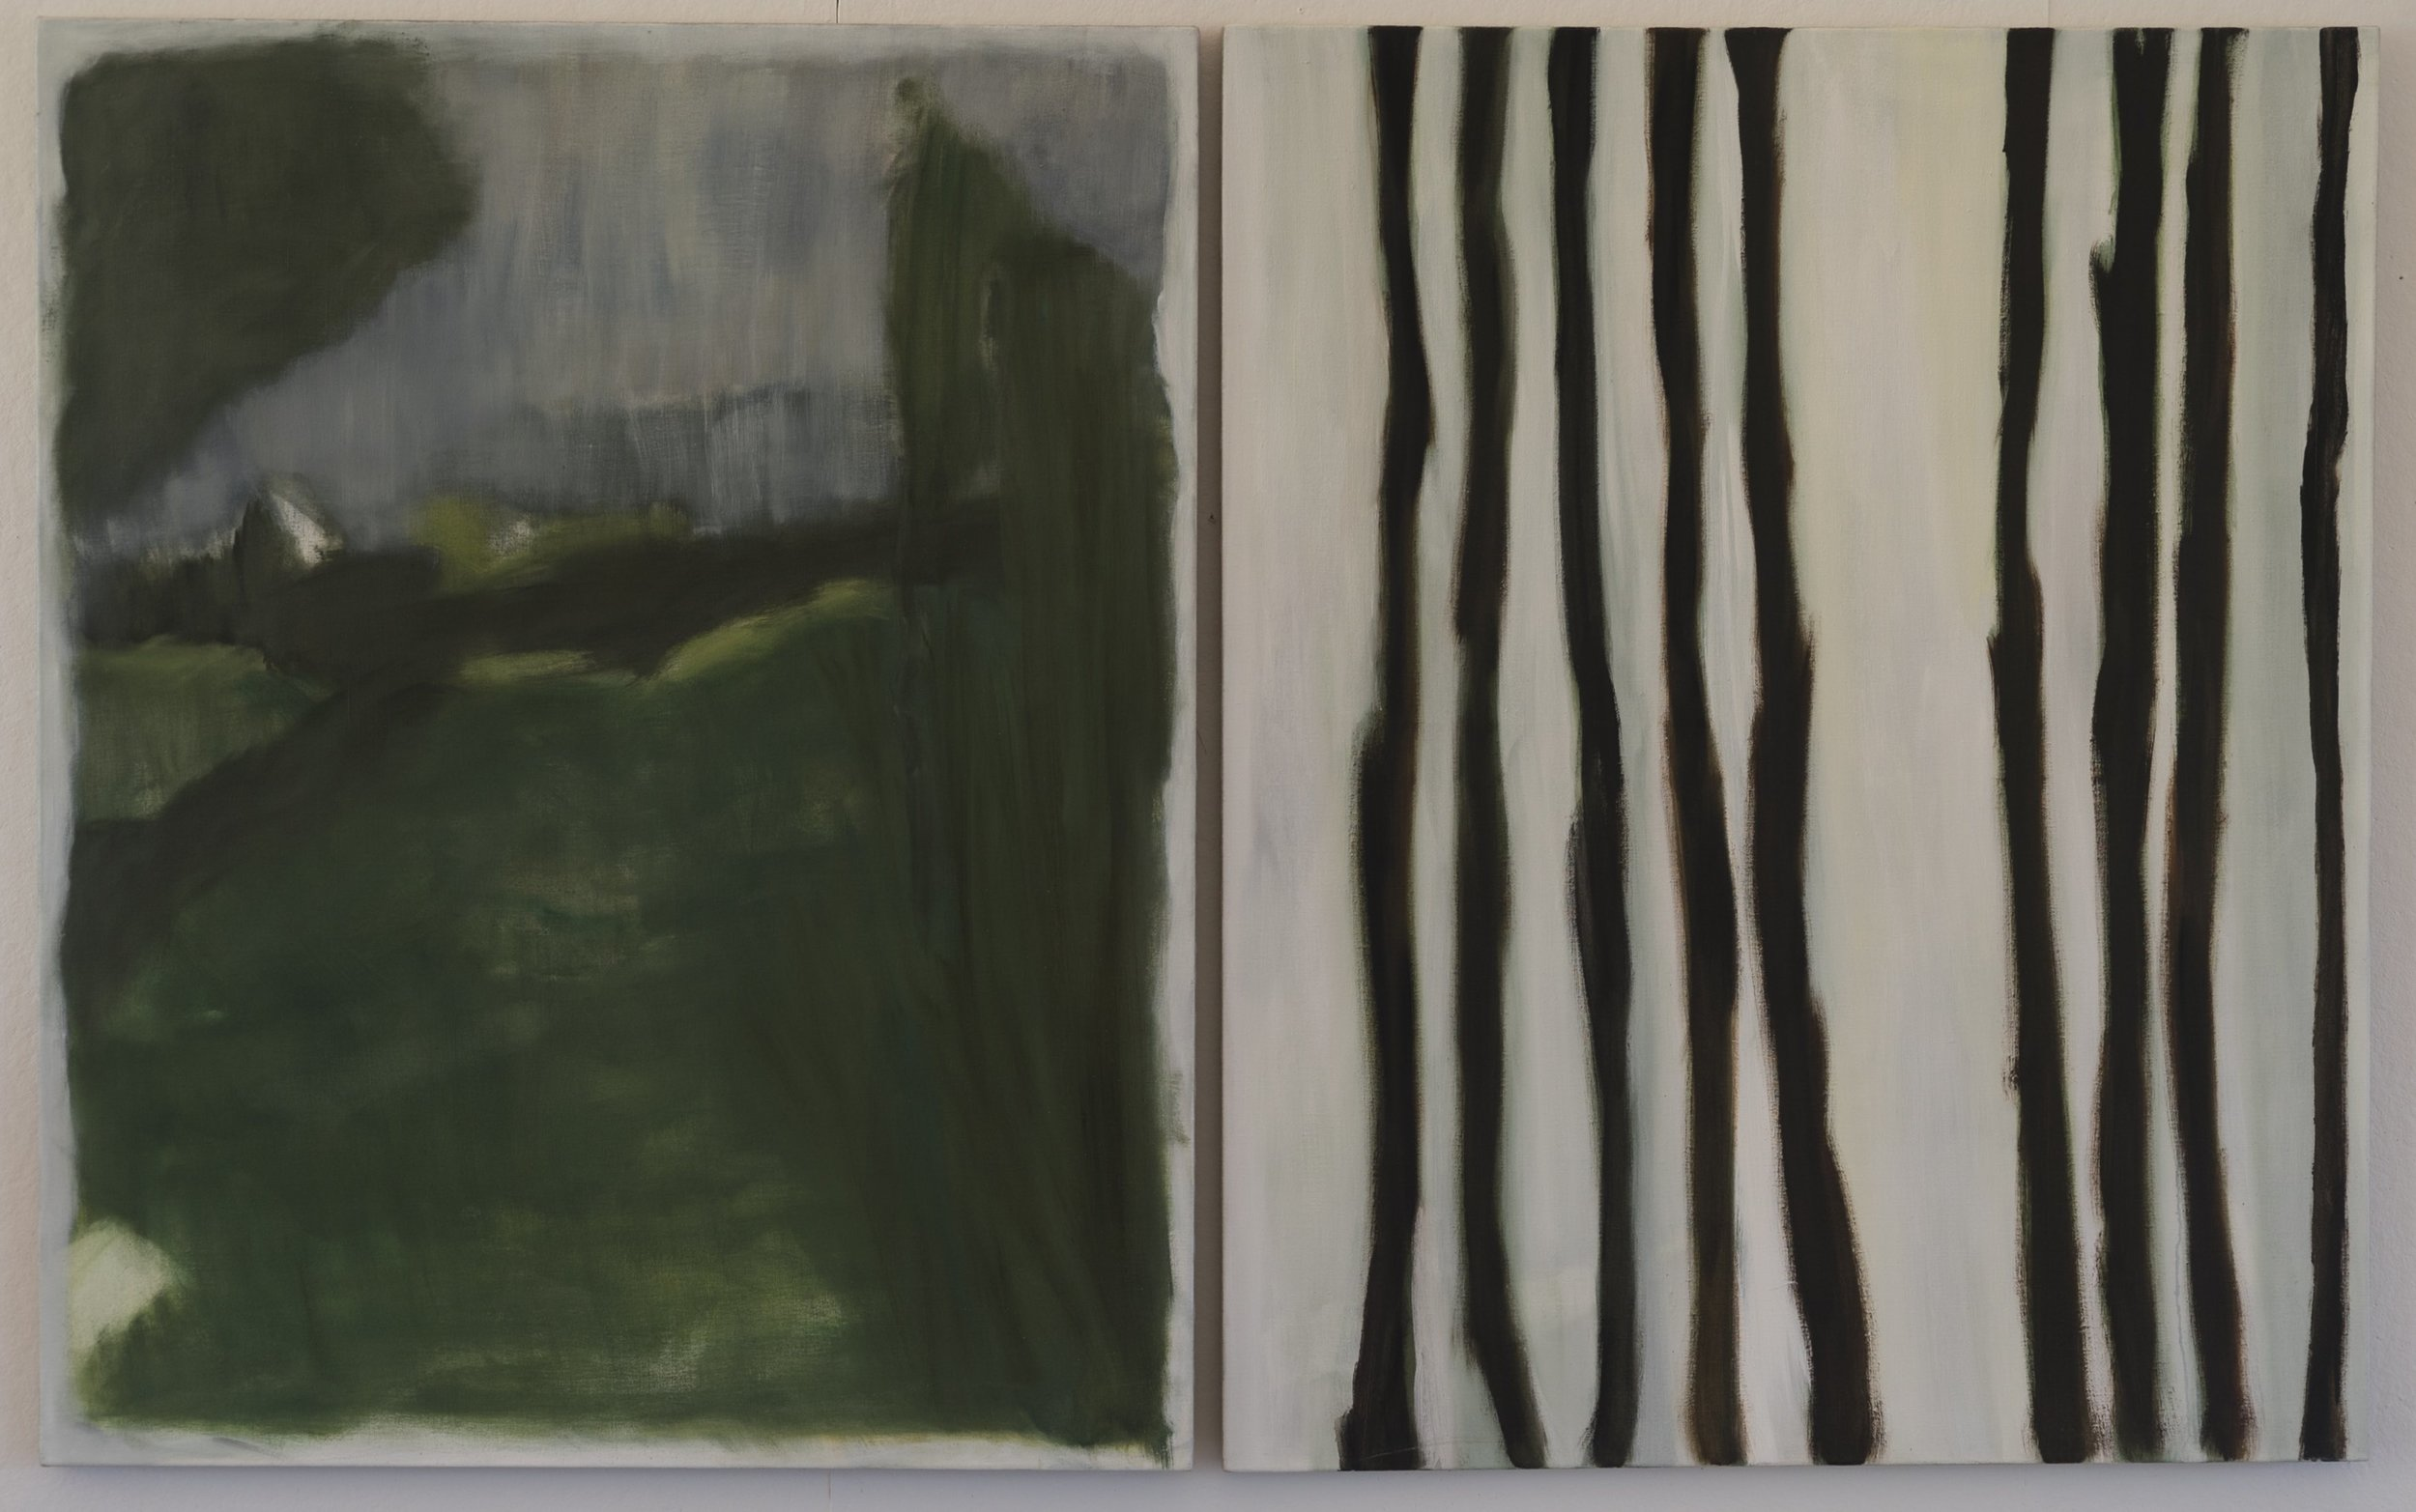 Vertical Green  2015  diptych  50 x 80in  oil on linen  photo: Sasha Schell